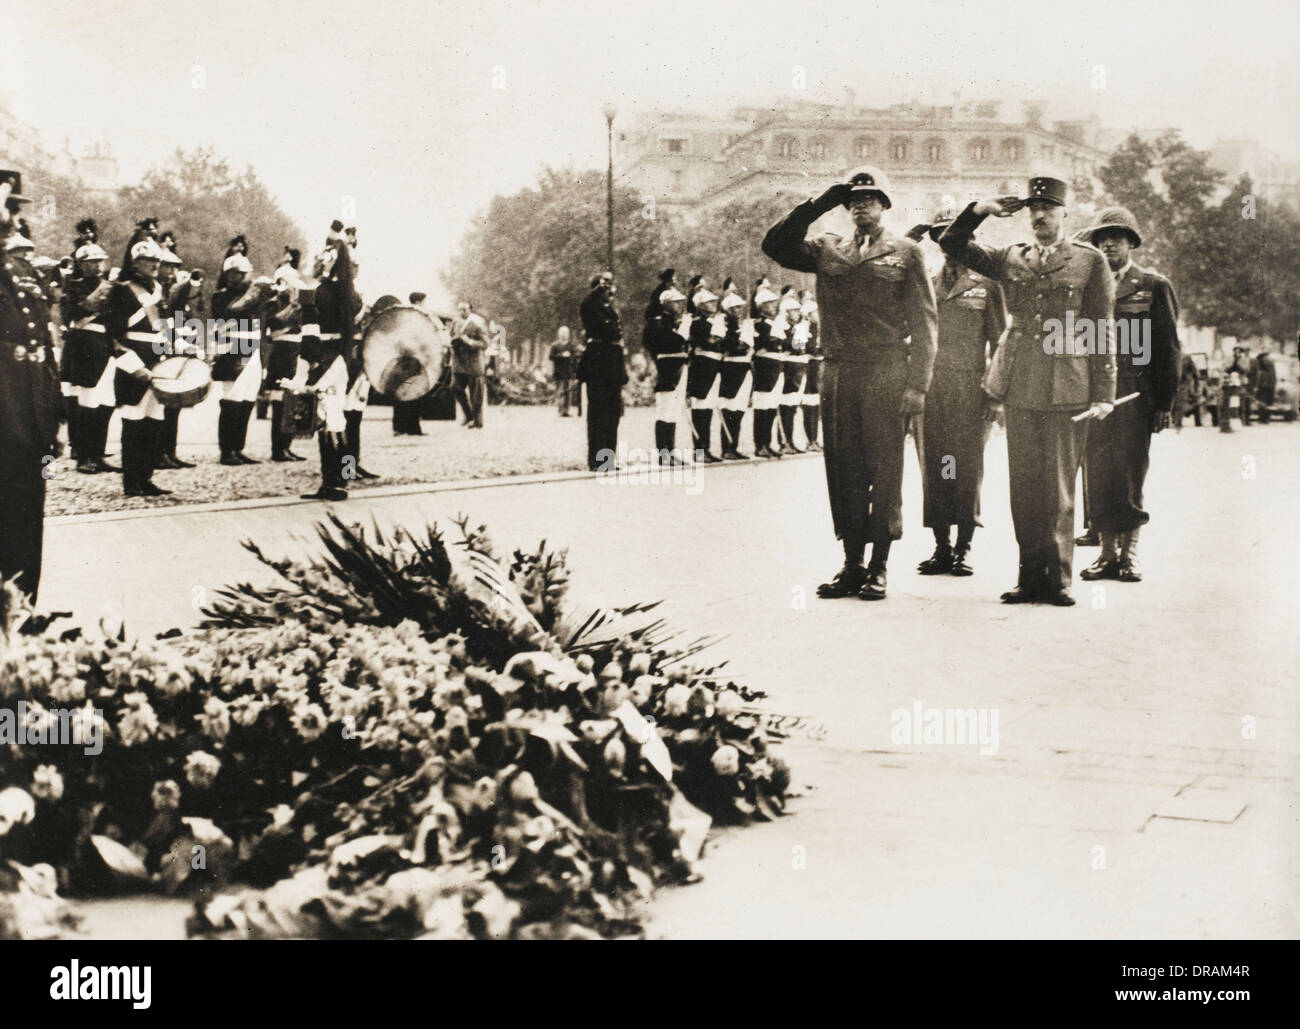 General Bradley and General Koenig at the Unknown Soldier's Tomb. From a collection of postcard-sized photographs issued to celebrate the Liberation of Paris between 19th and 26th August, 1944.  1944 - Stock Image